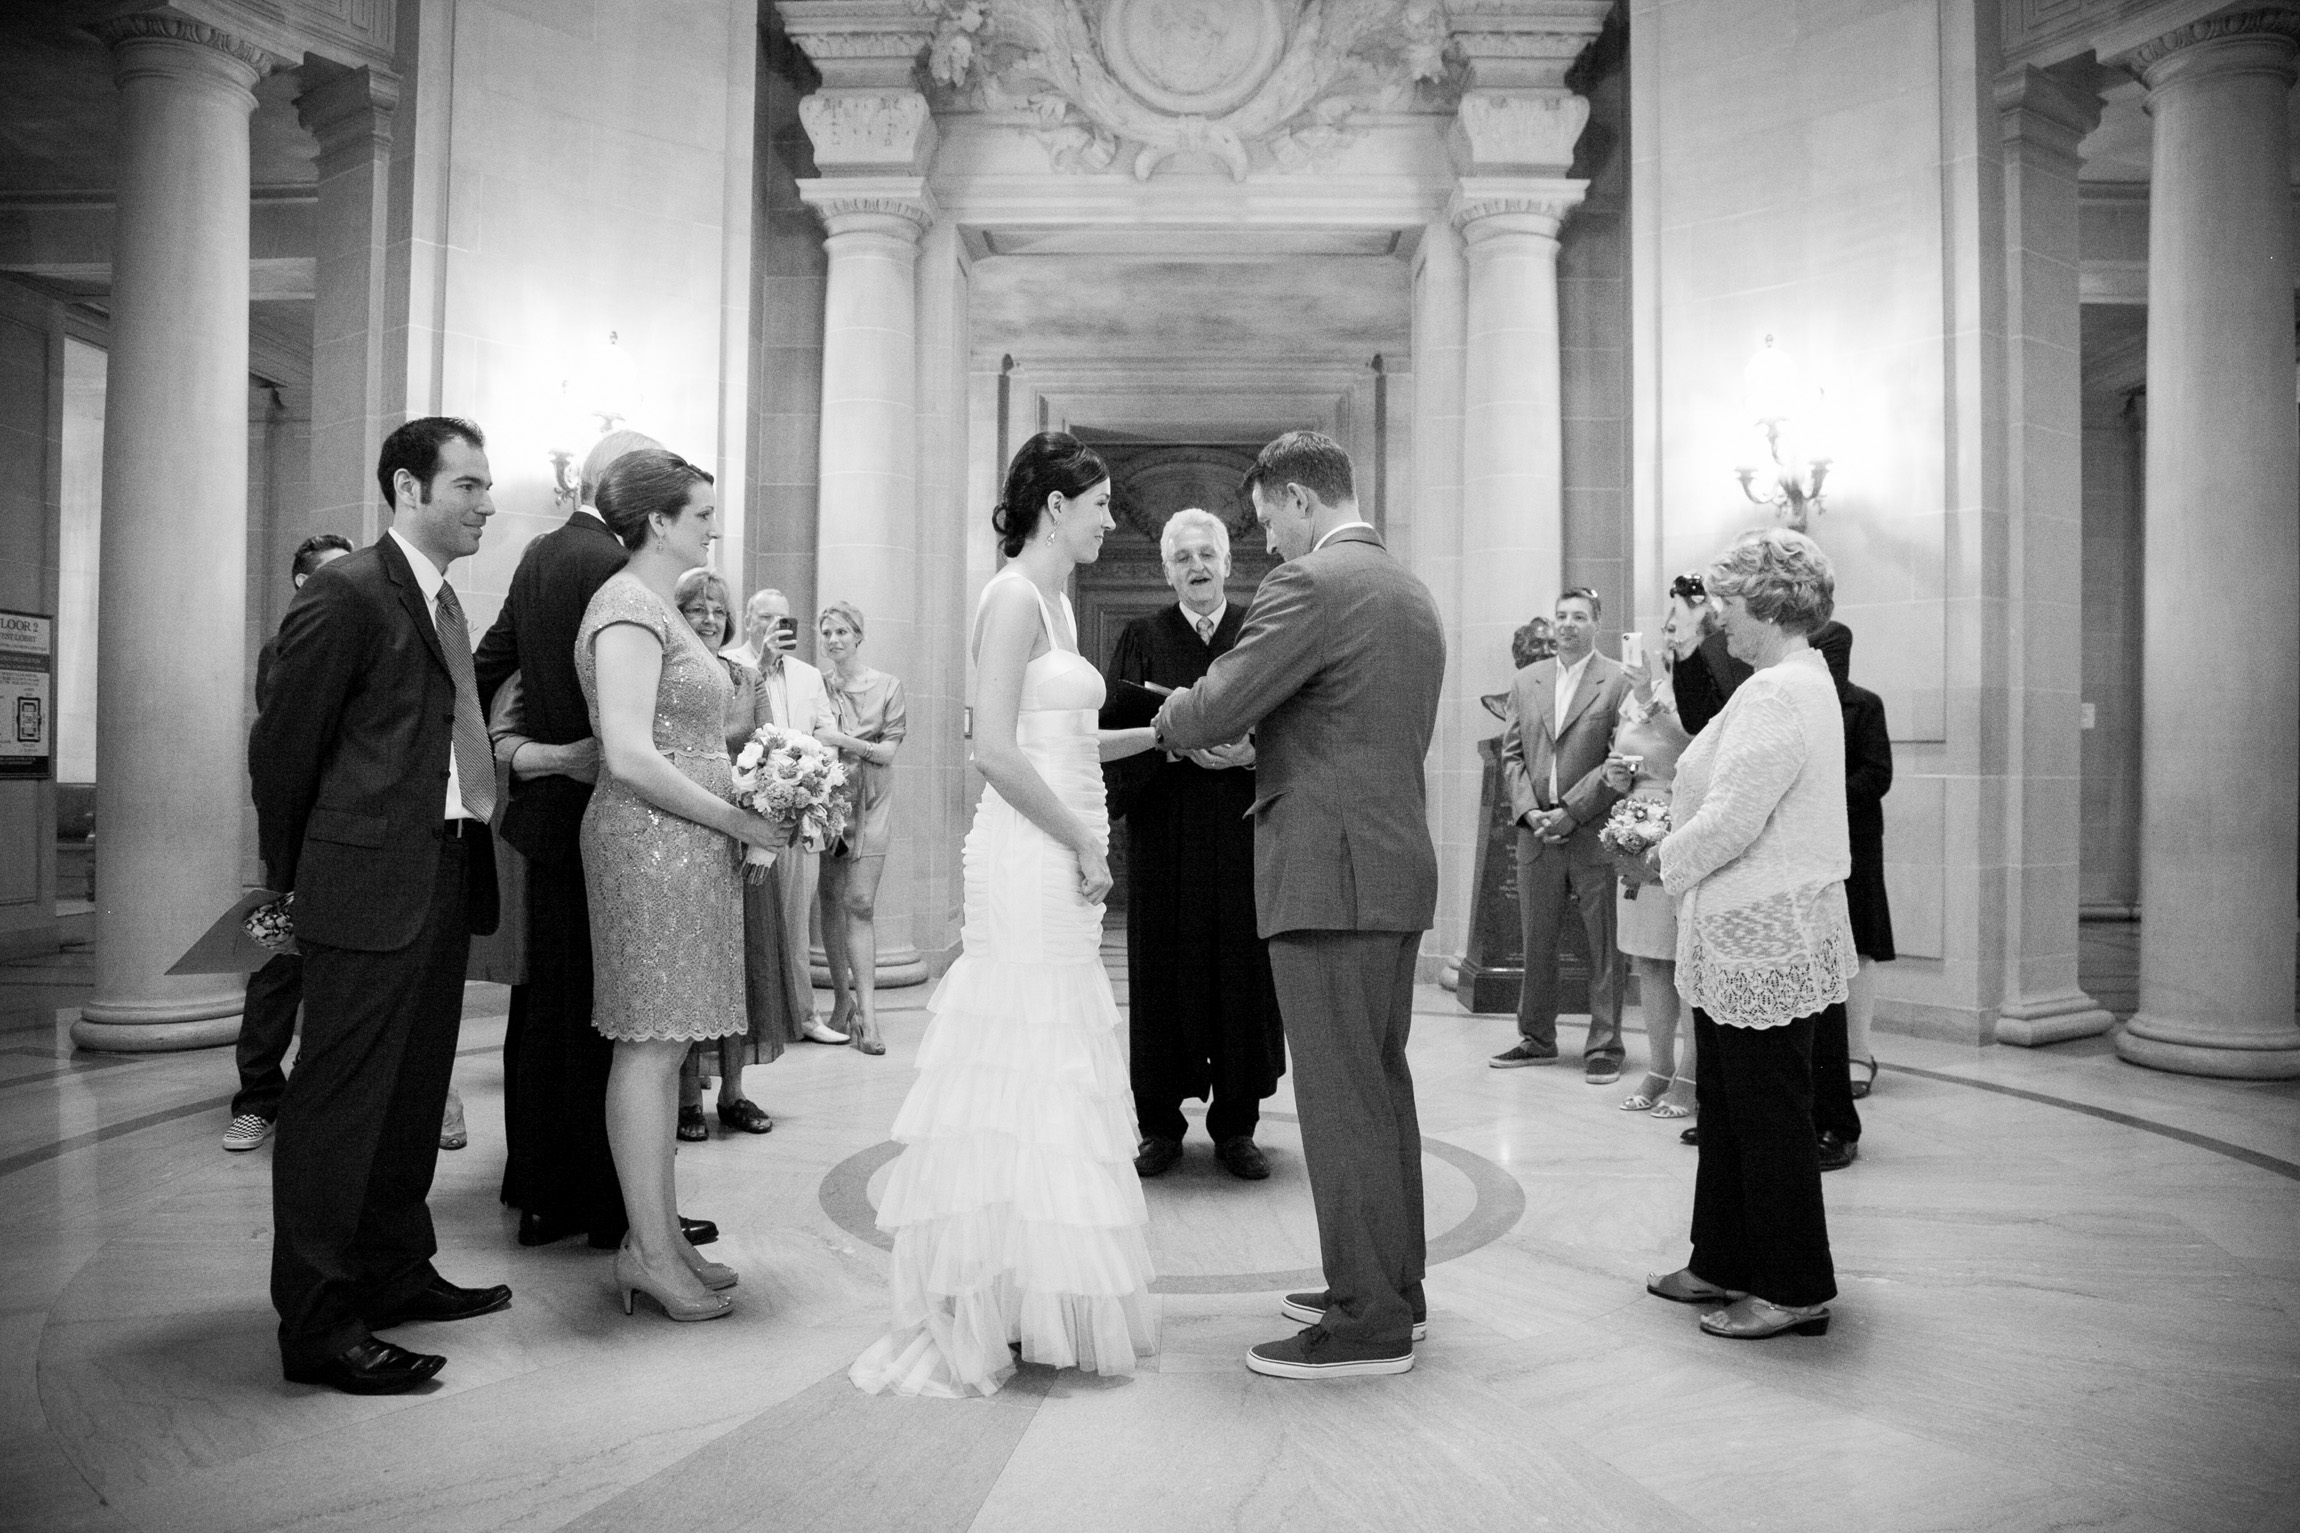 012_janaeshieldsphotography_sanfrancisco_cityhall_weddings.jpg